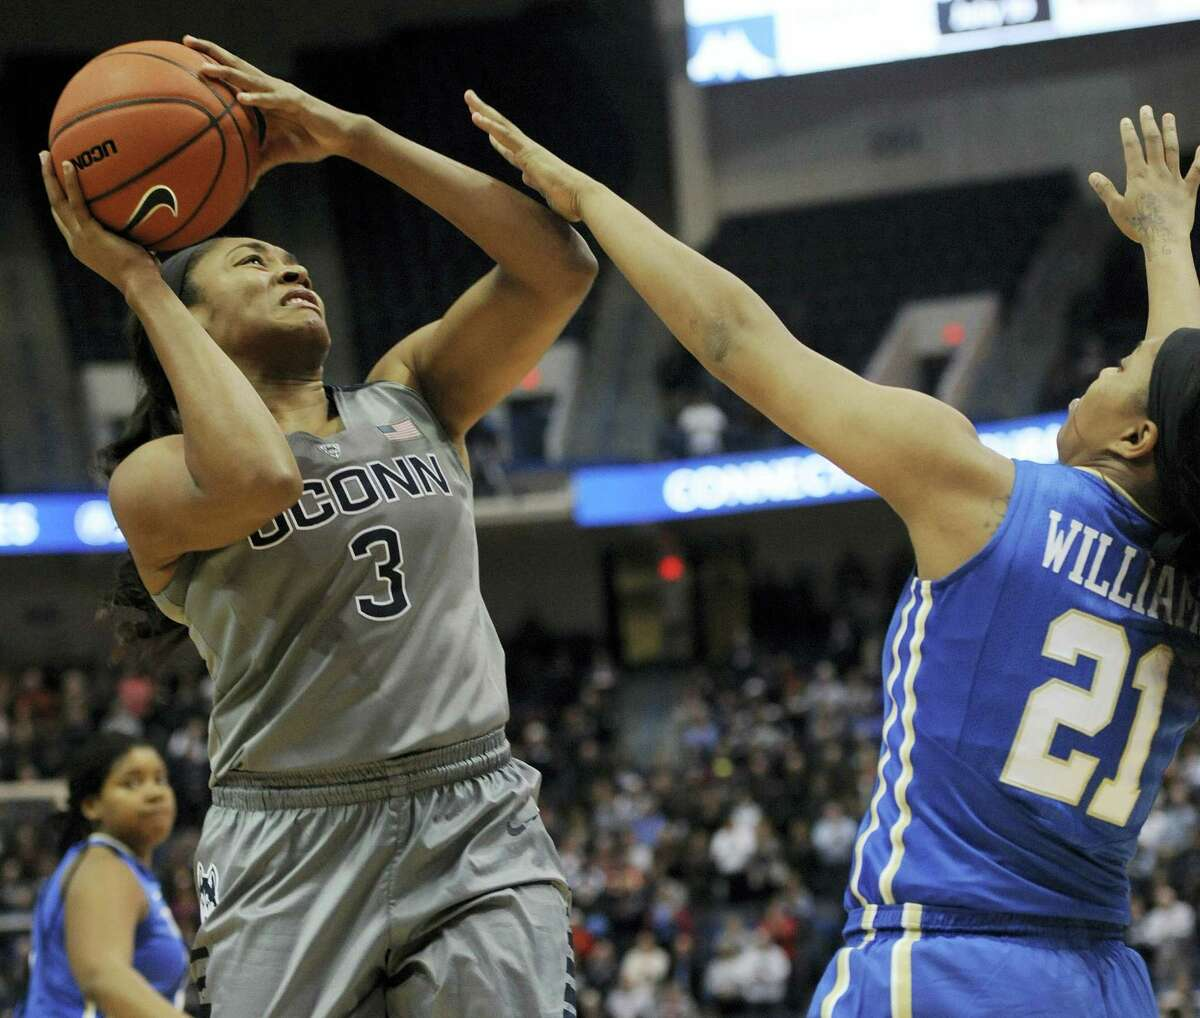 Connecticut's Morgan Tuck, left, is fouled by Tulsa's Te'era Williams in the first half of an NCAA college basketball game, Wednesday, Jan. 6, 2016, in Hartford, Conn. (AP Photo/Jessica Hill)